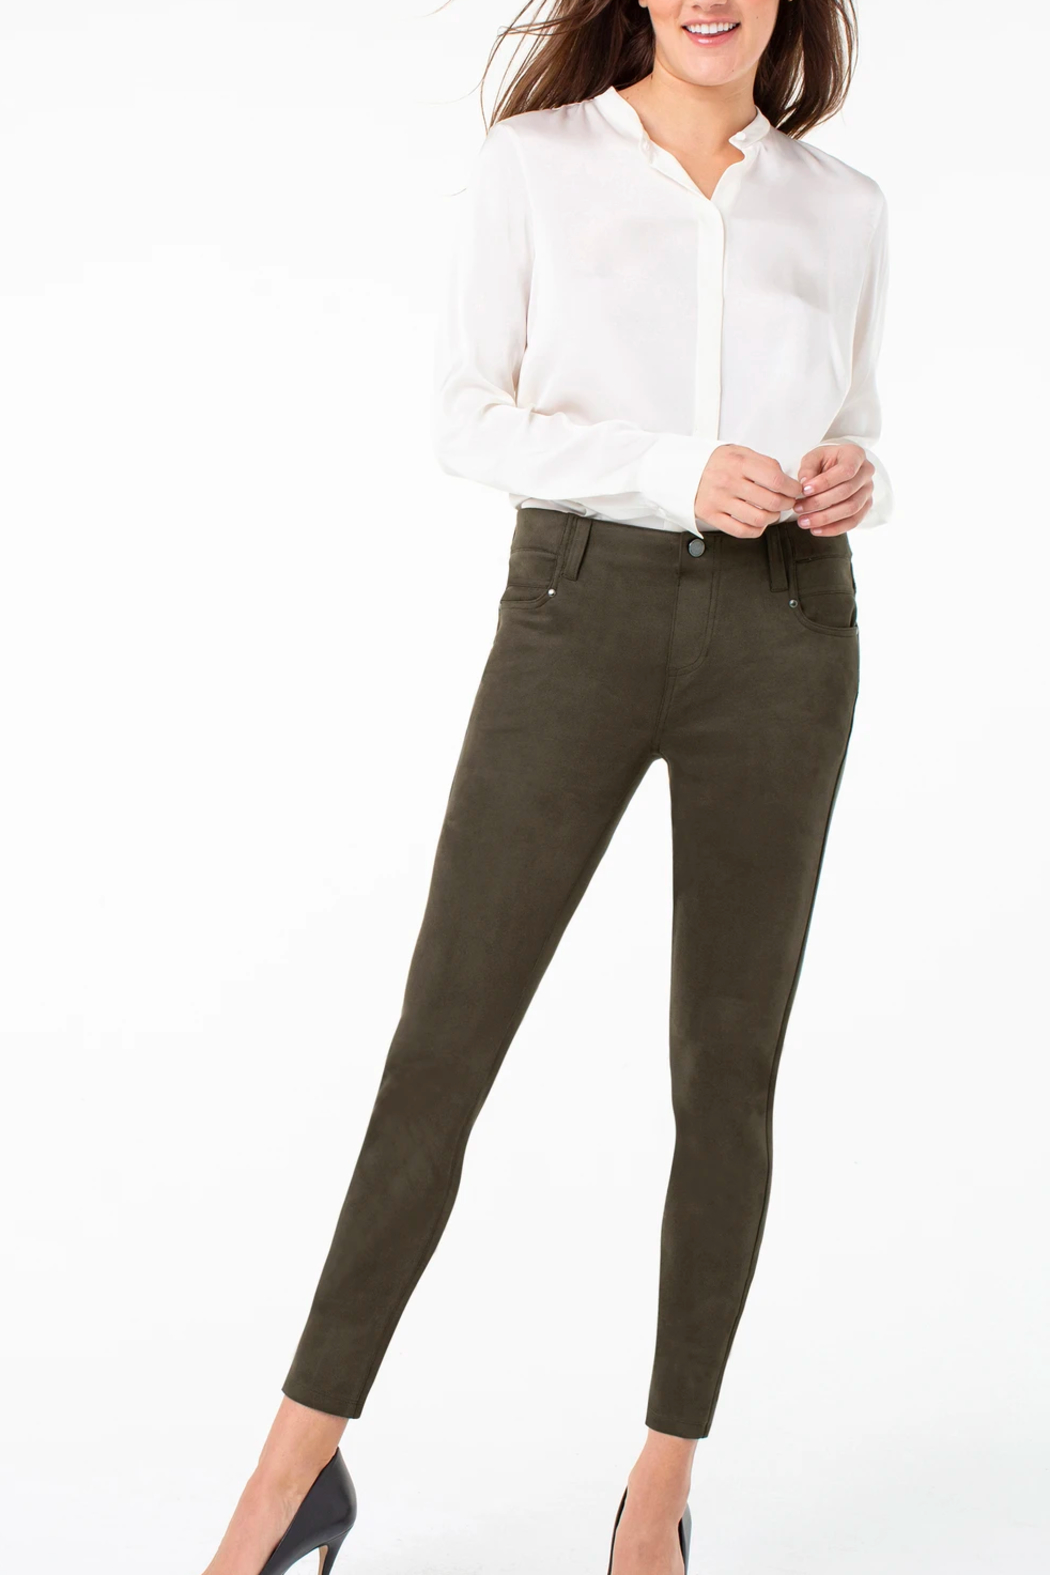 Liverpool Gia Faux-suede Skinnypant - Side Cropped Image